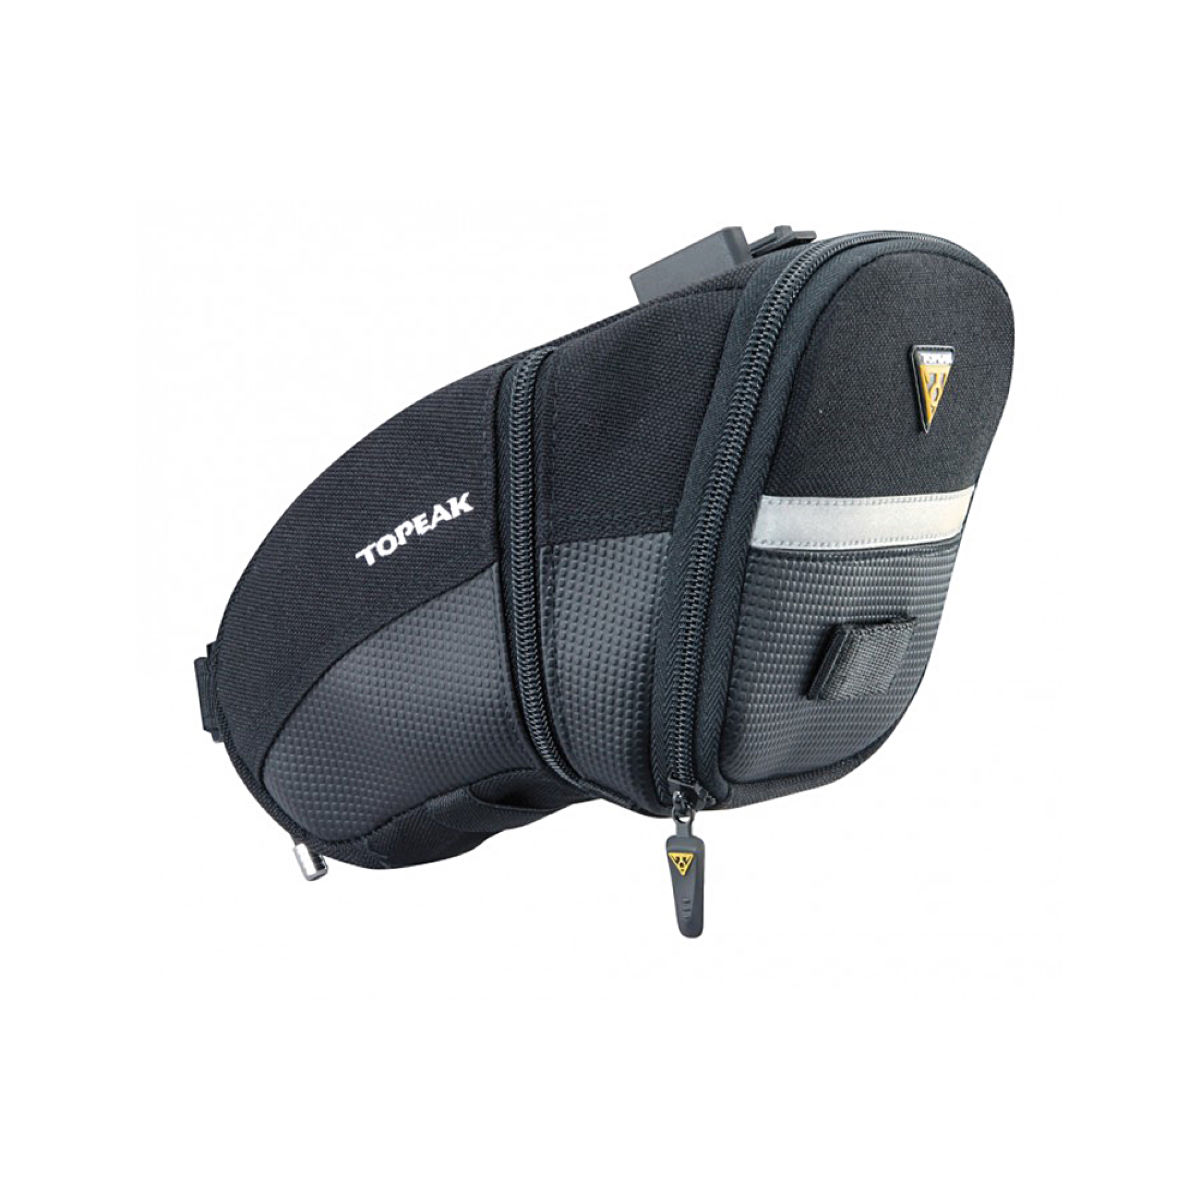 Sacoche de selle Topeak Aero Wedge (fixation clip-on, taille L) - L Noir Sacoches de selle